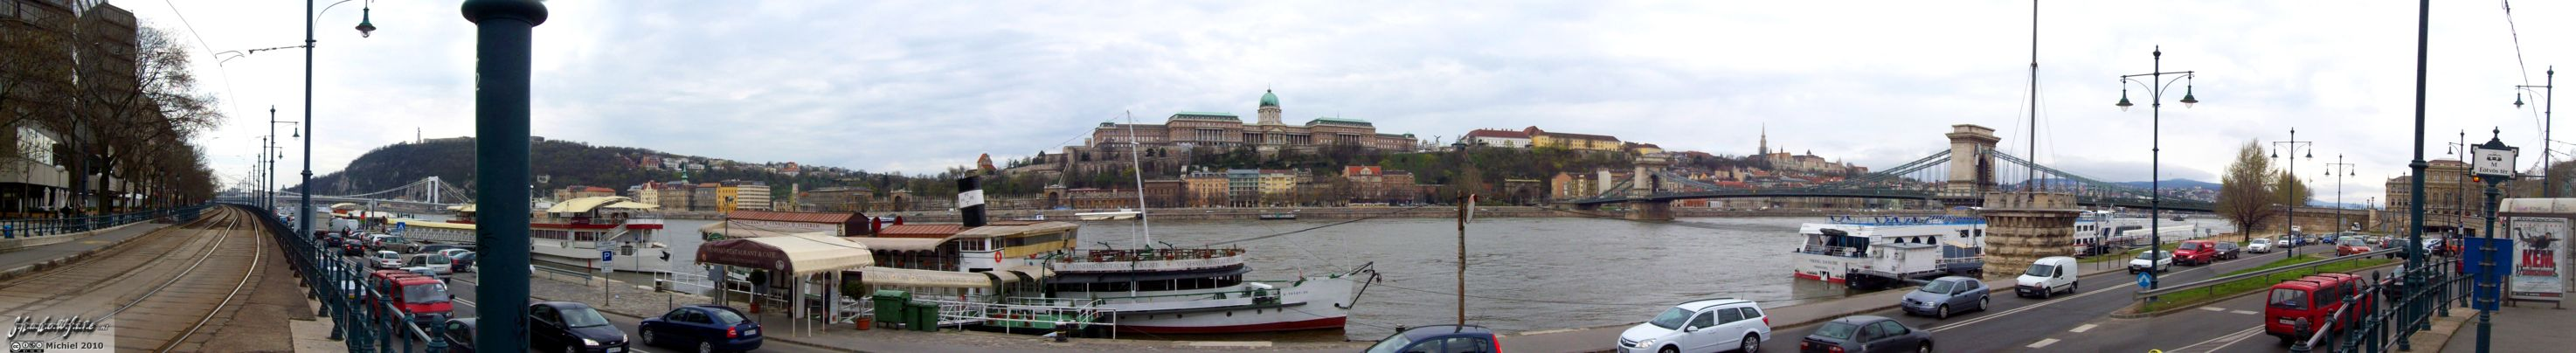 Danube river panorama Danube river, Chain bridge, Buda Castle, Budapest, Hungary, Budapest 2010,travel, photography,favorites, panoramas